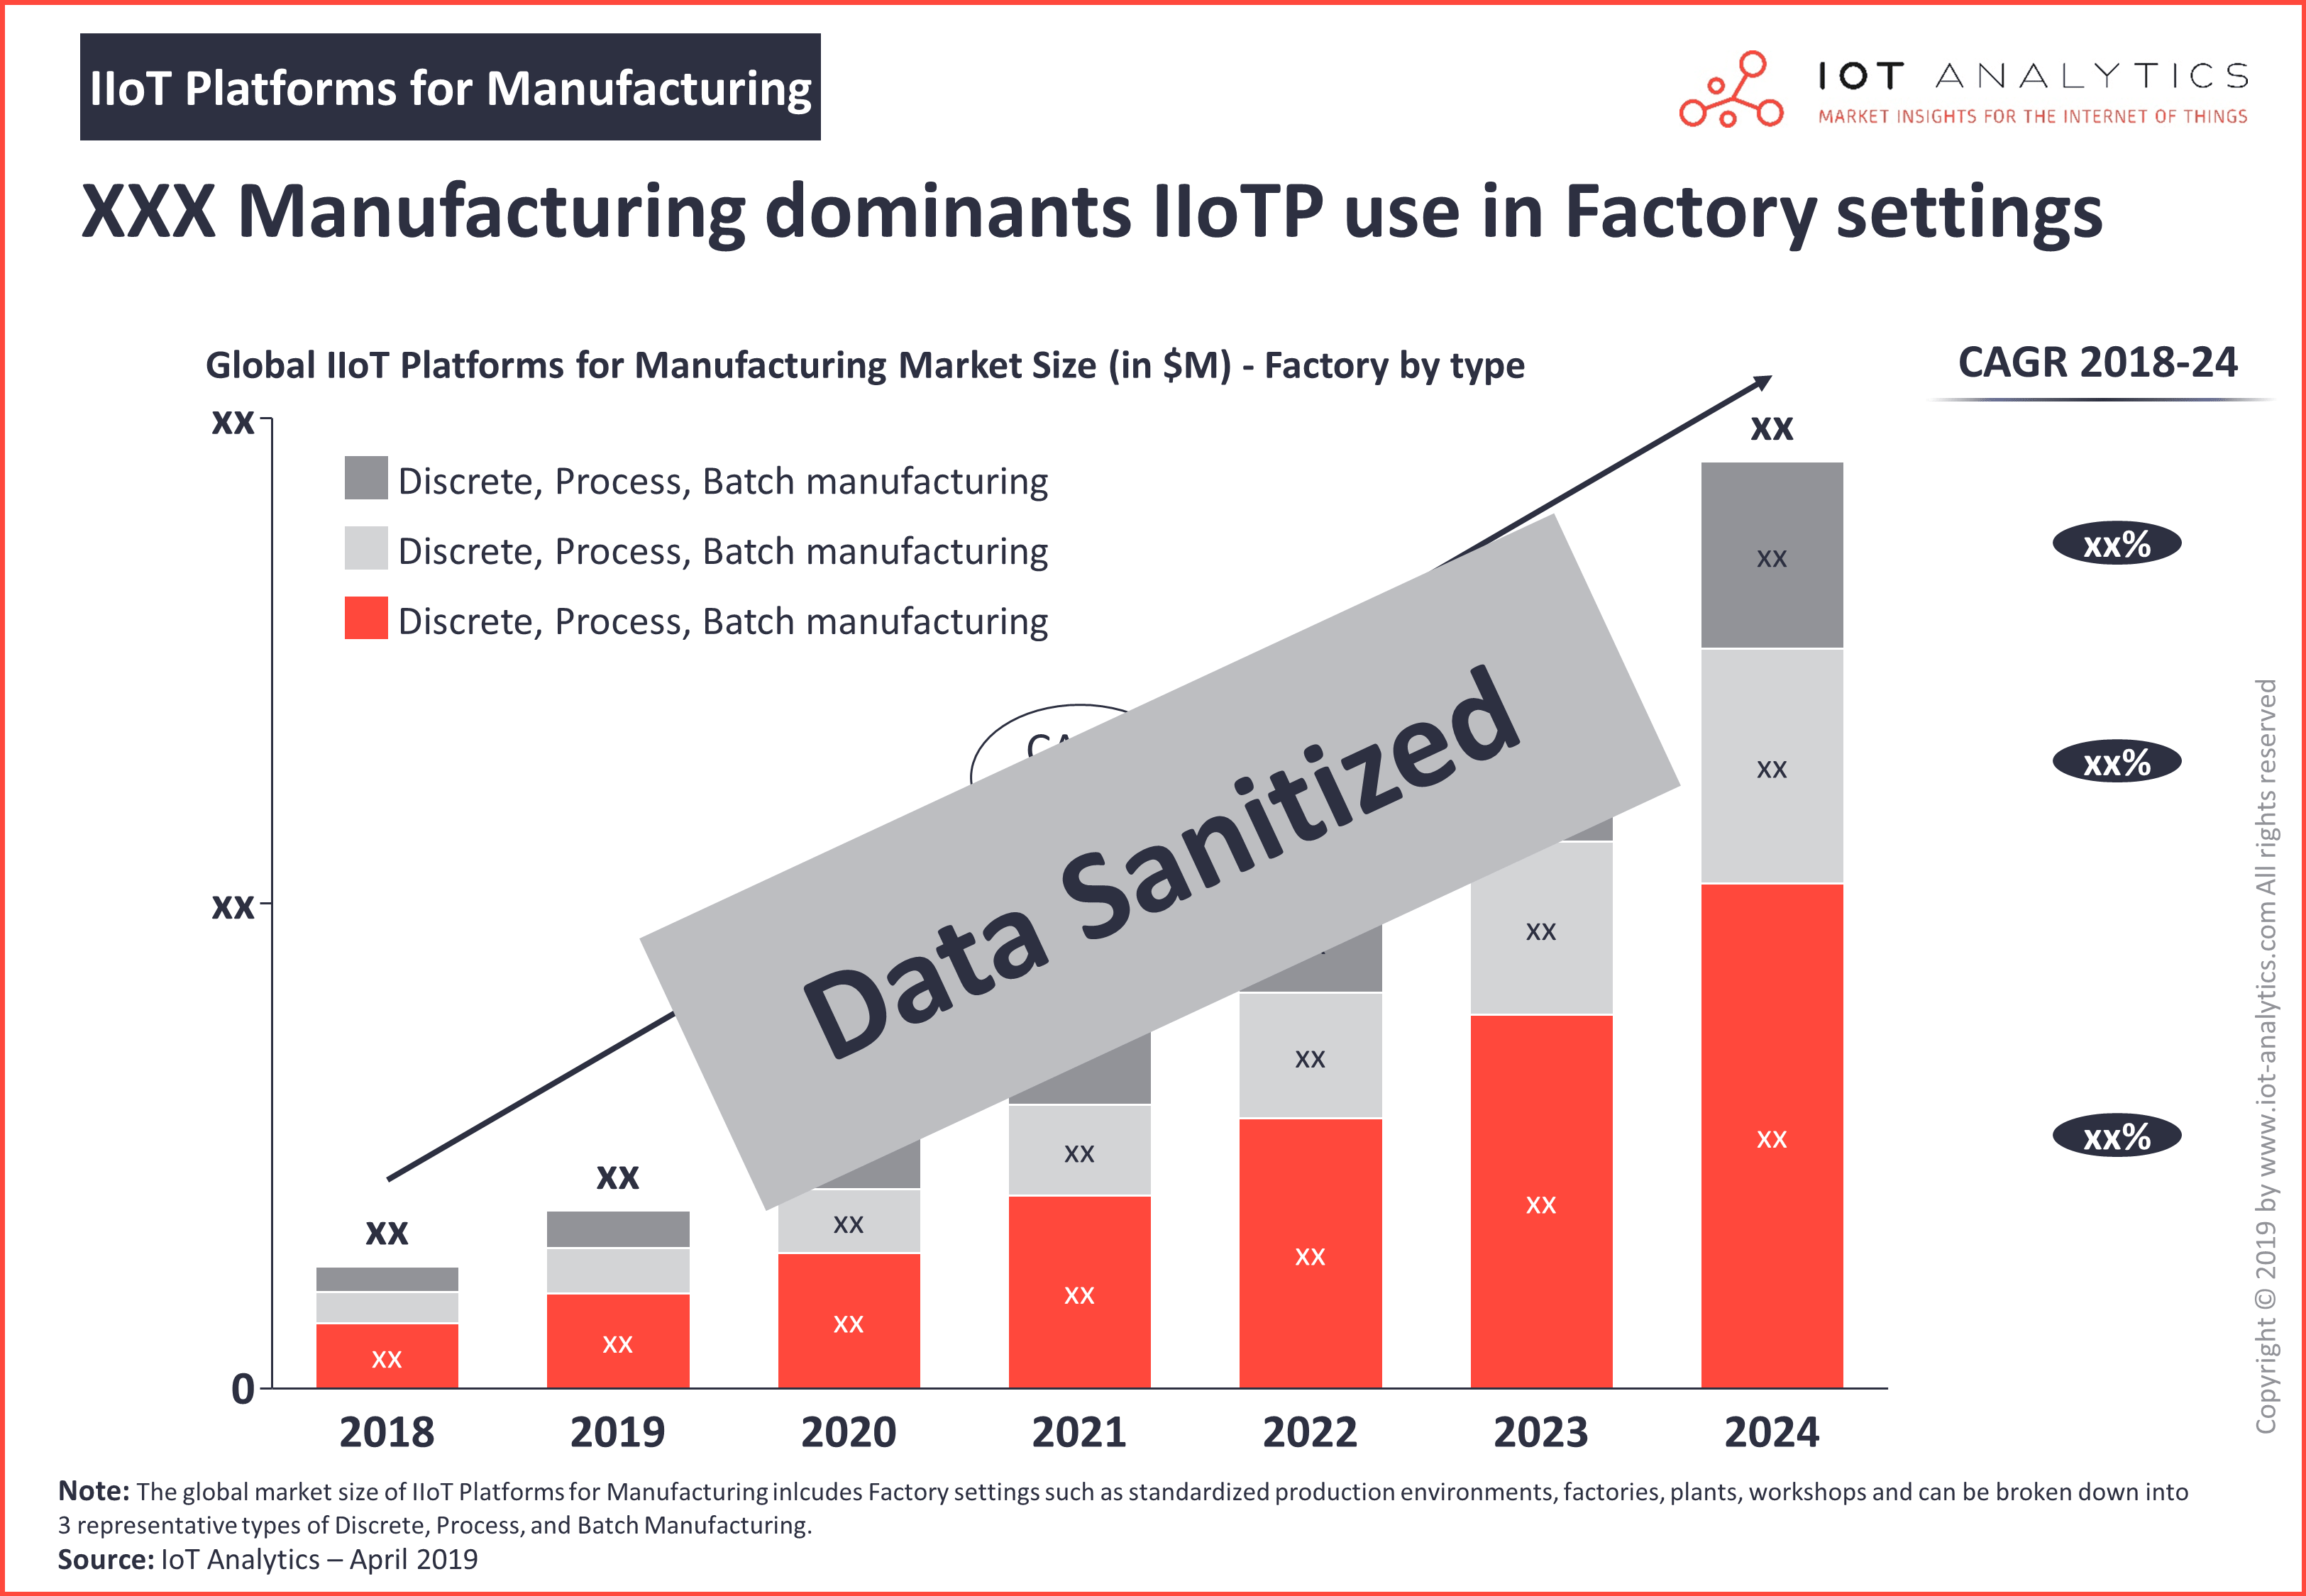 IIoT Platforms for Manufacturing 2019 - 2024 - IIoT platform market by discrete, process, batch